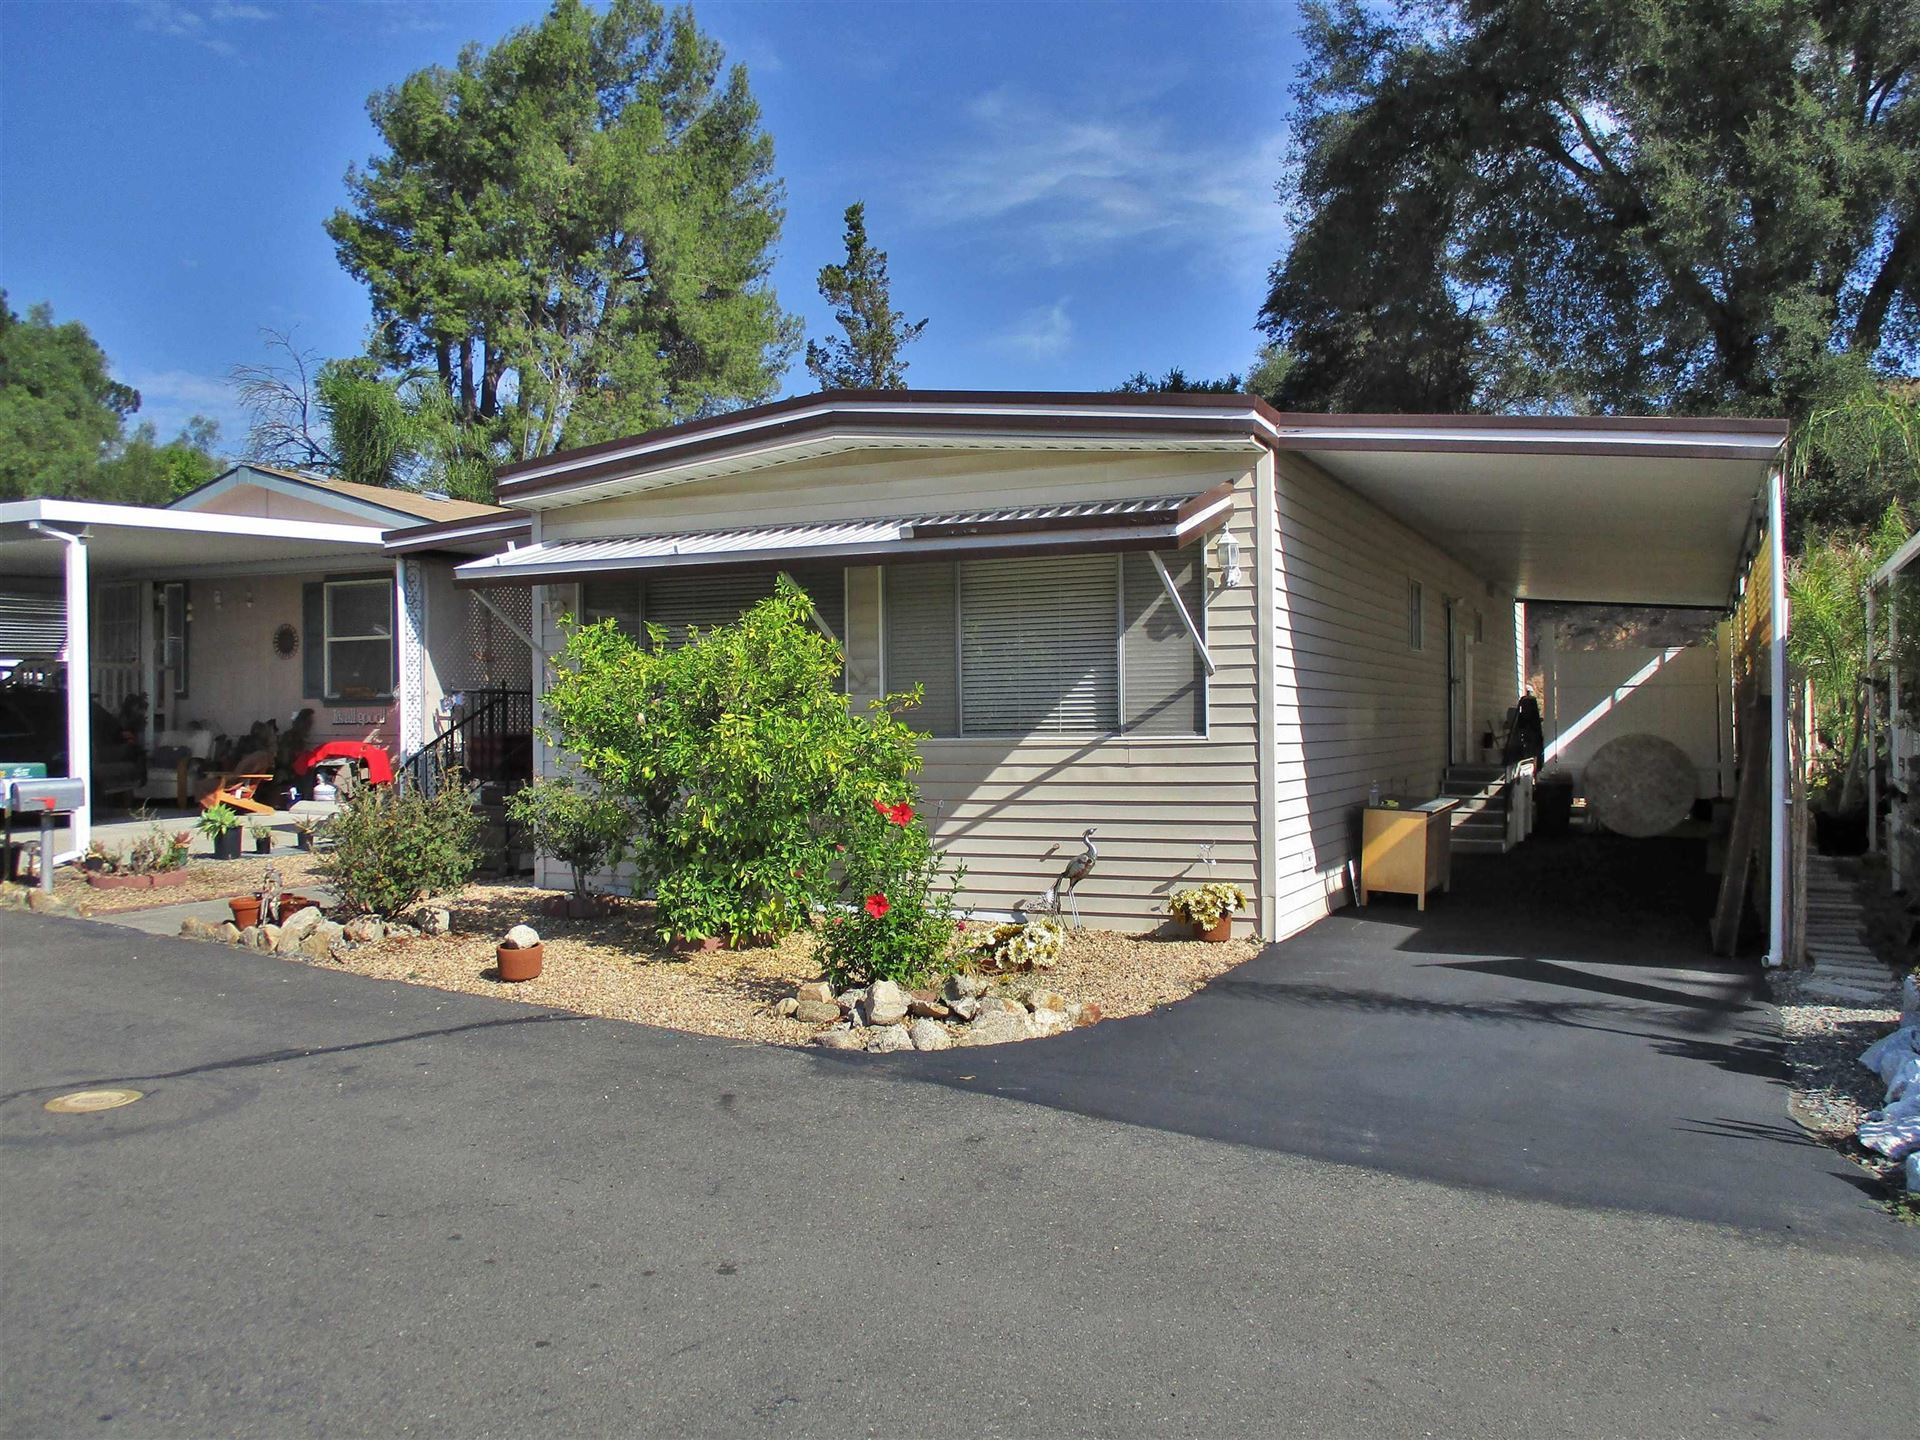 Photo of 28890 Lilac Rd #12, Valley Center, CA 92082 (MLS # 210026304)